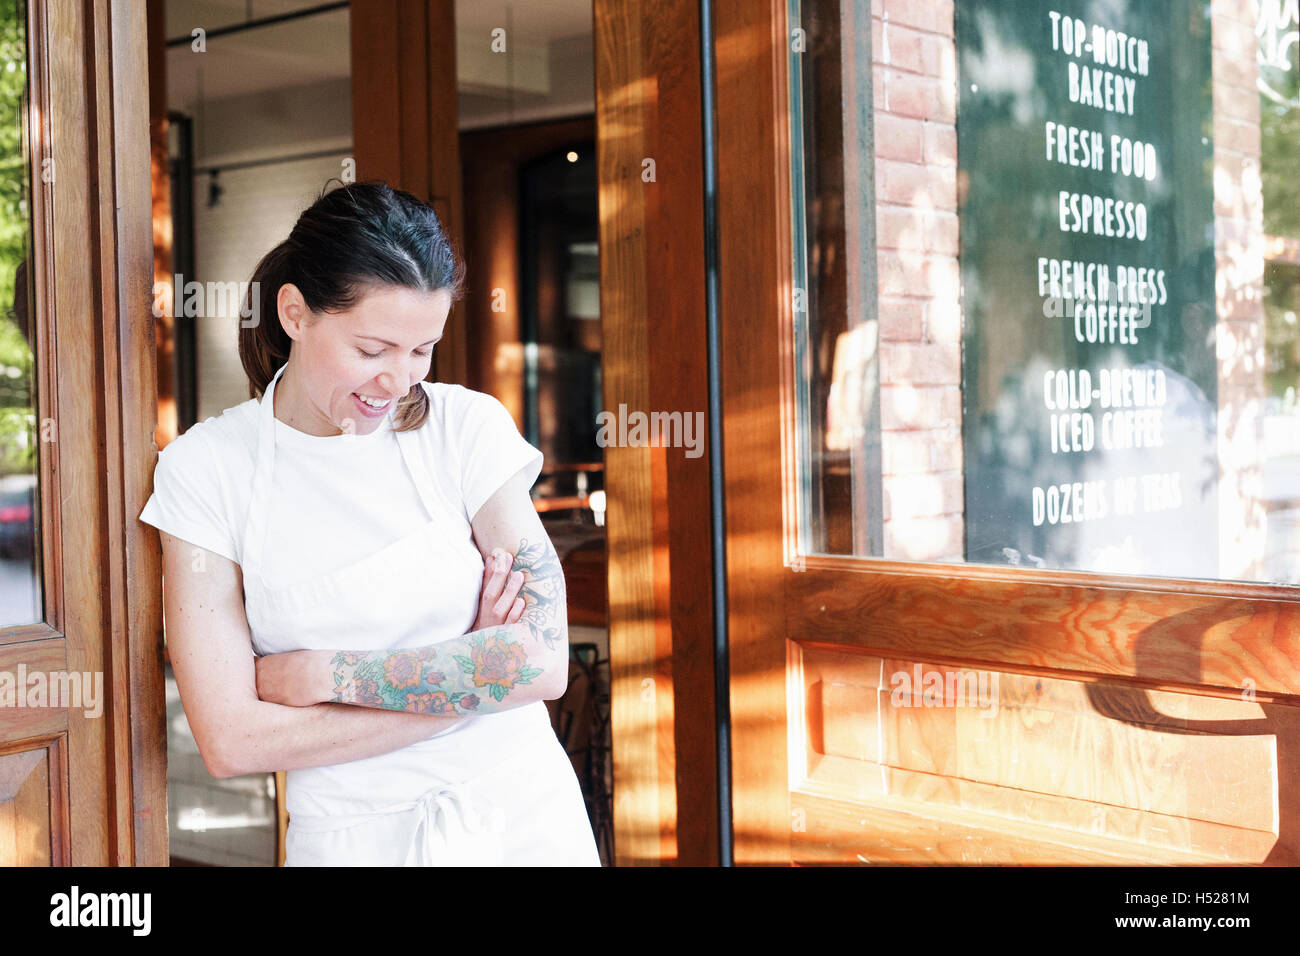 Portrait of a woman wearing a white apron with her arms crossed in a doorway, tattoos on her left arm. - Stock Image